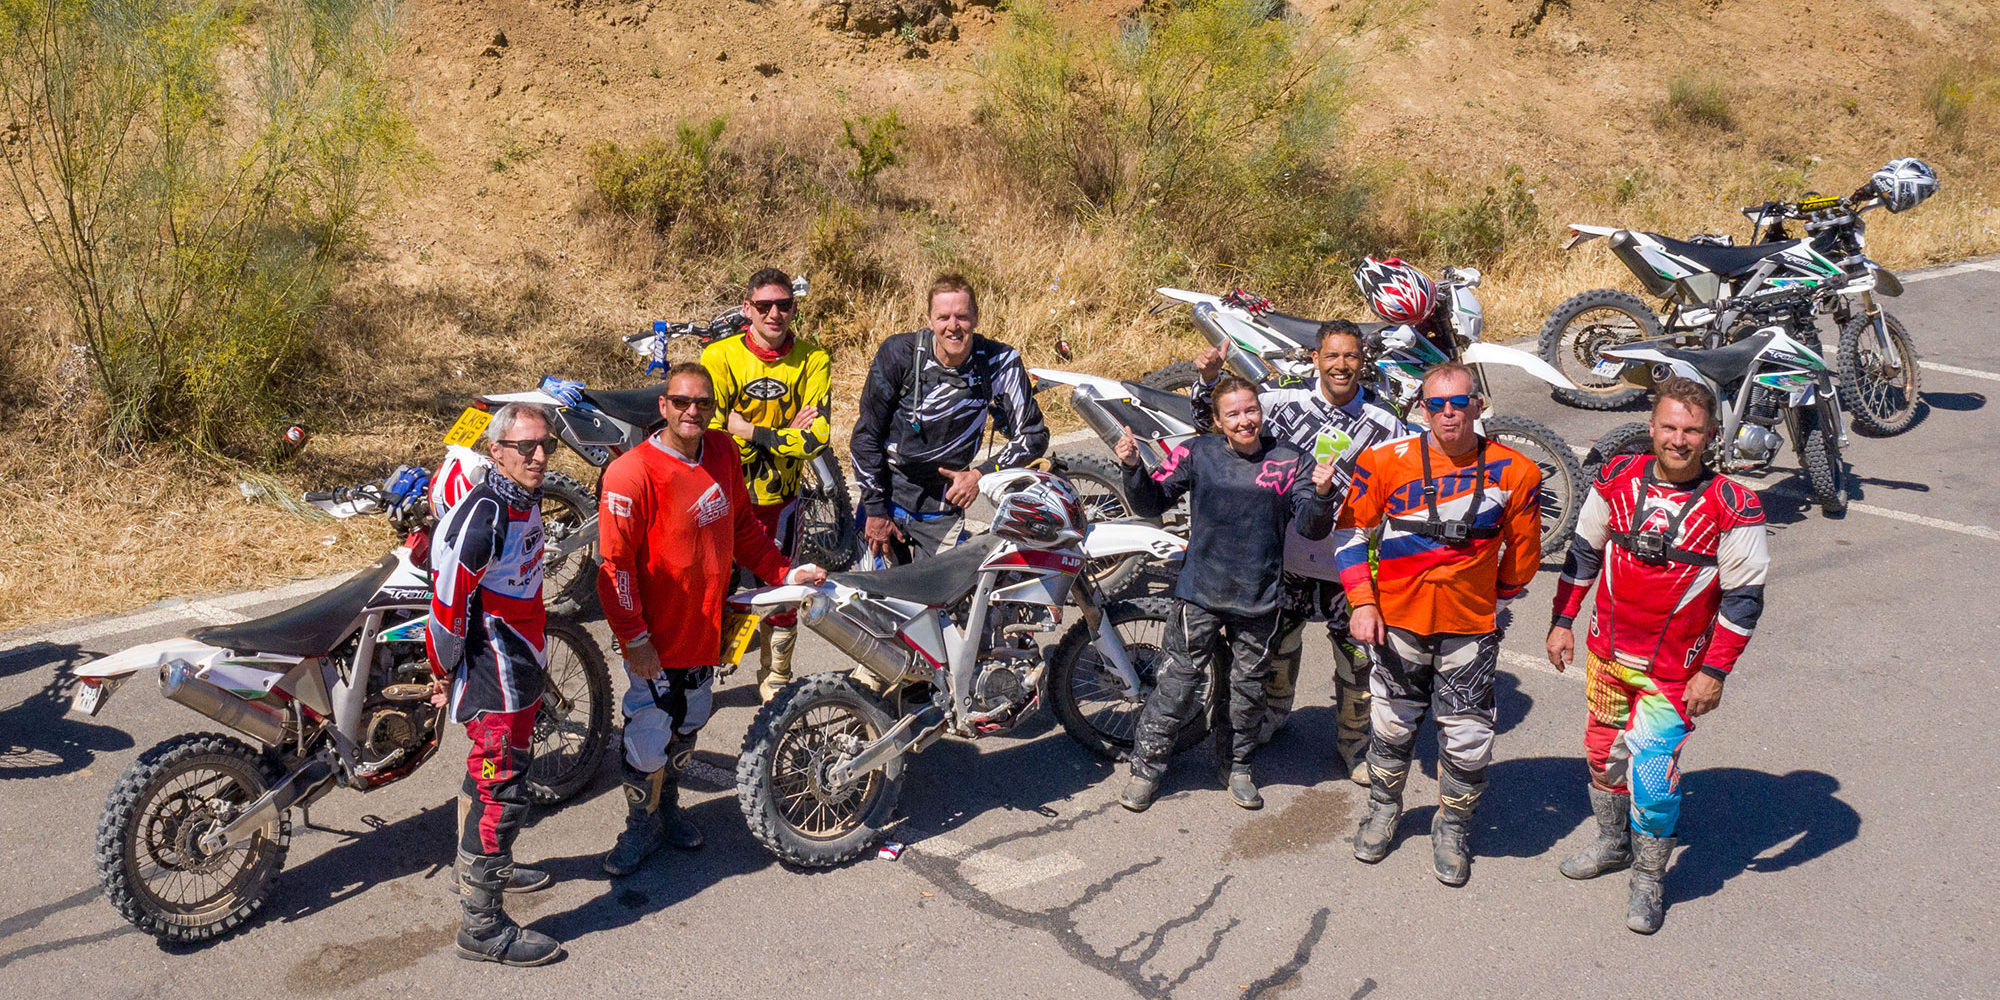 The best off-road motorcycle tours in Spain